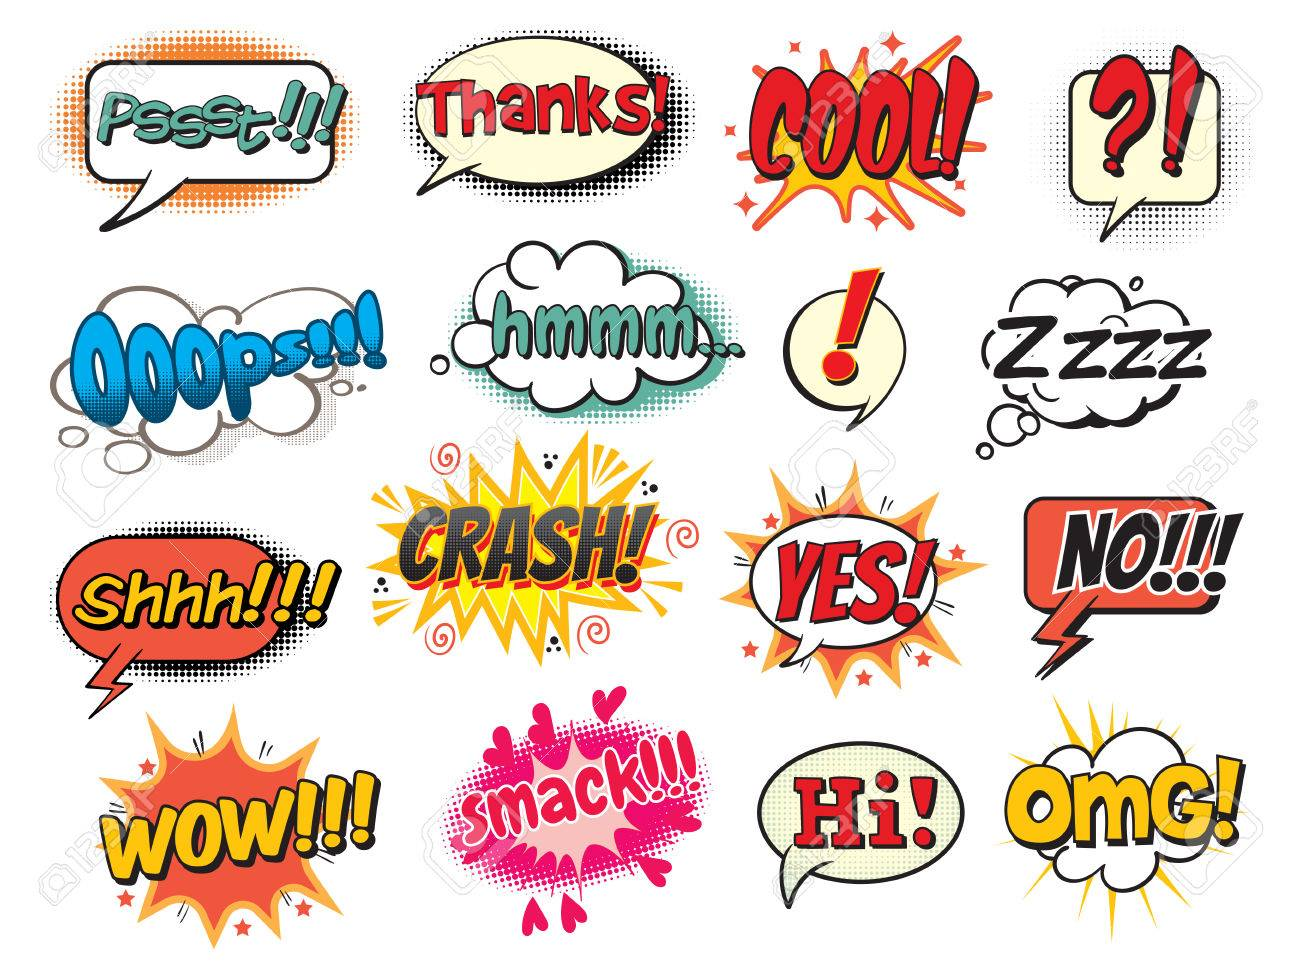 Cool, smack, oops, wow, thanks, yes, no, hi, crash, omg, hmm, psst, shh! Bubble template for comics. Pop art comics style. Vector illustration. Isolated on white background - 50123418